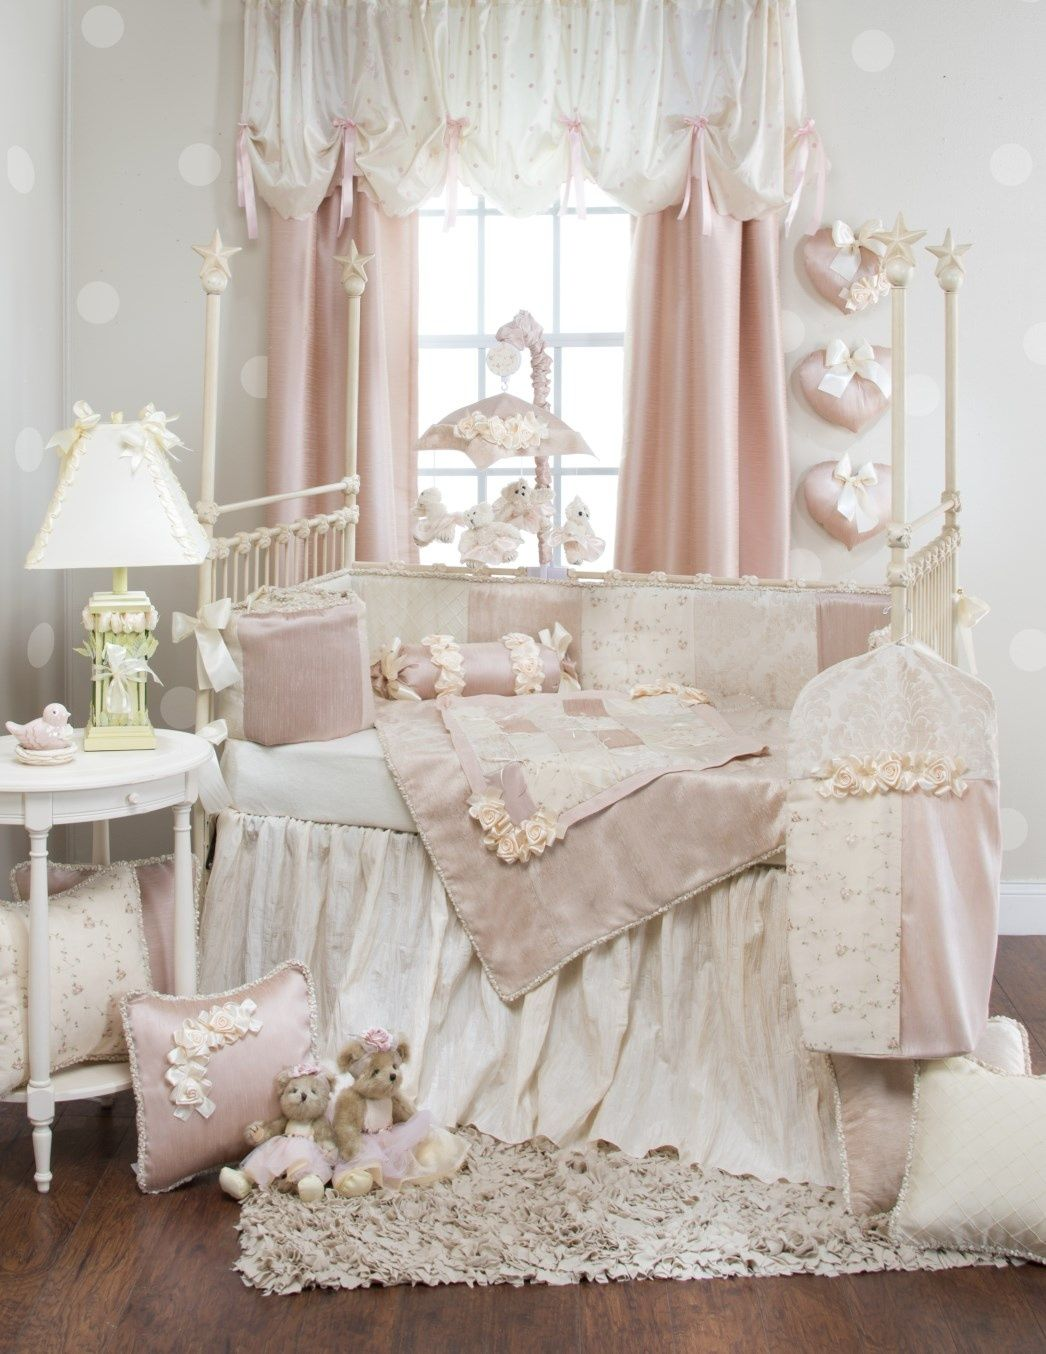 Baby cribs victoria - The Glenna Jean Ribbons Roses Baby Crib Bedding Set Will Pamper Your Little